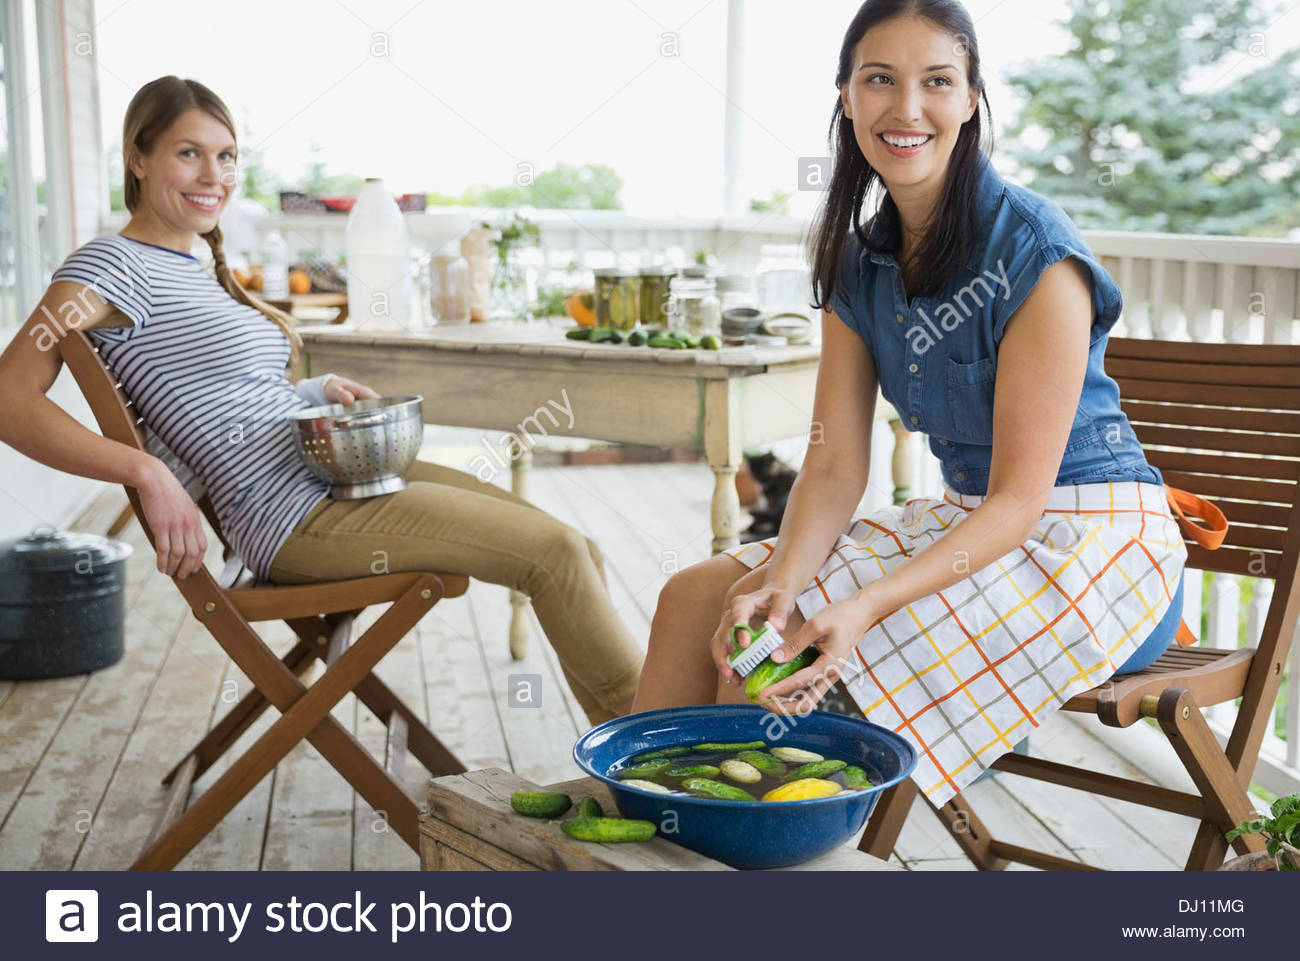 Women washing vegetables on porch - Stock Image